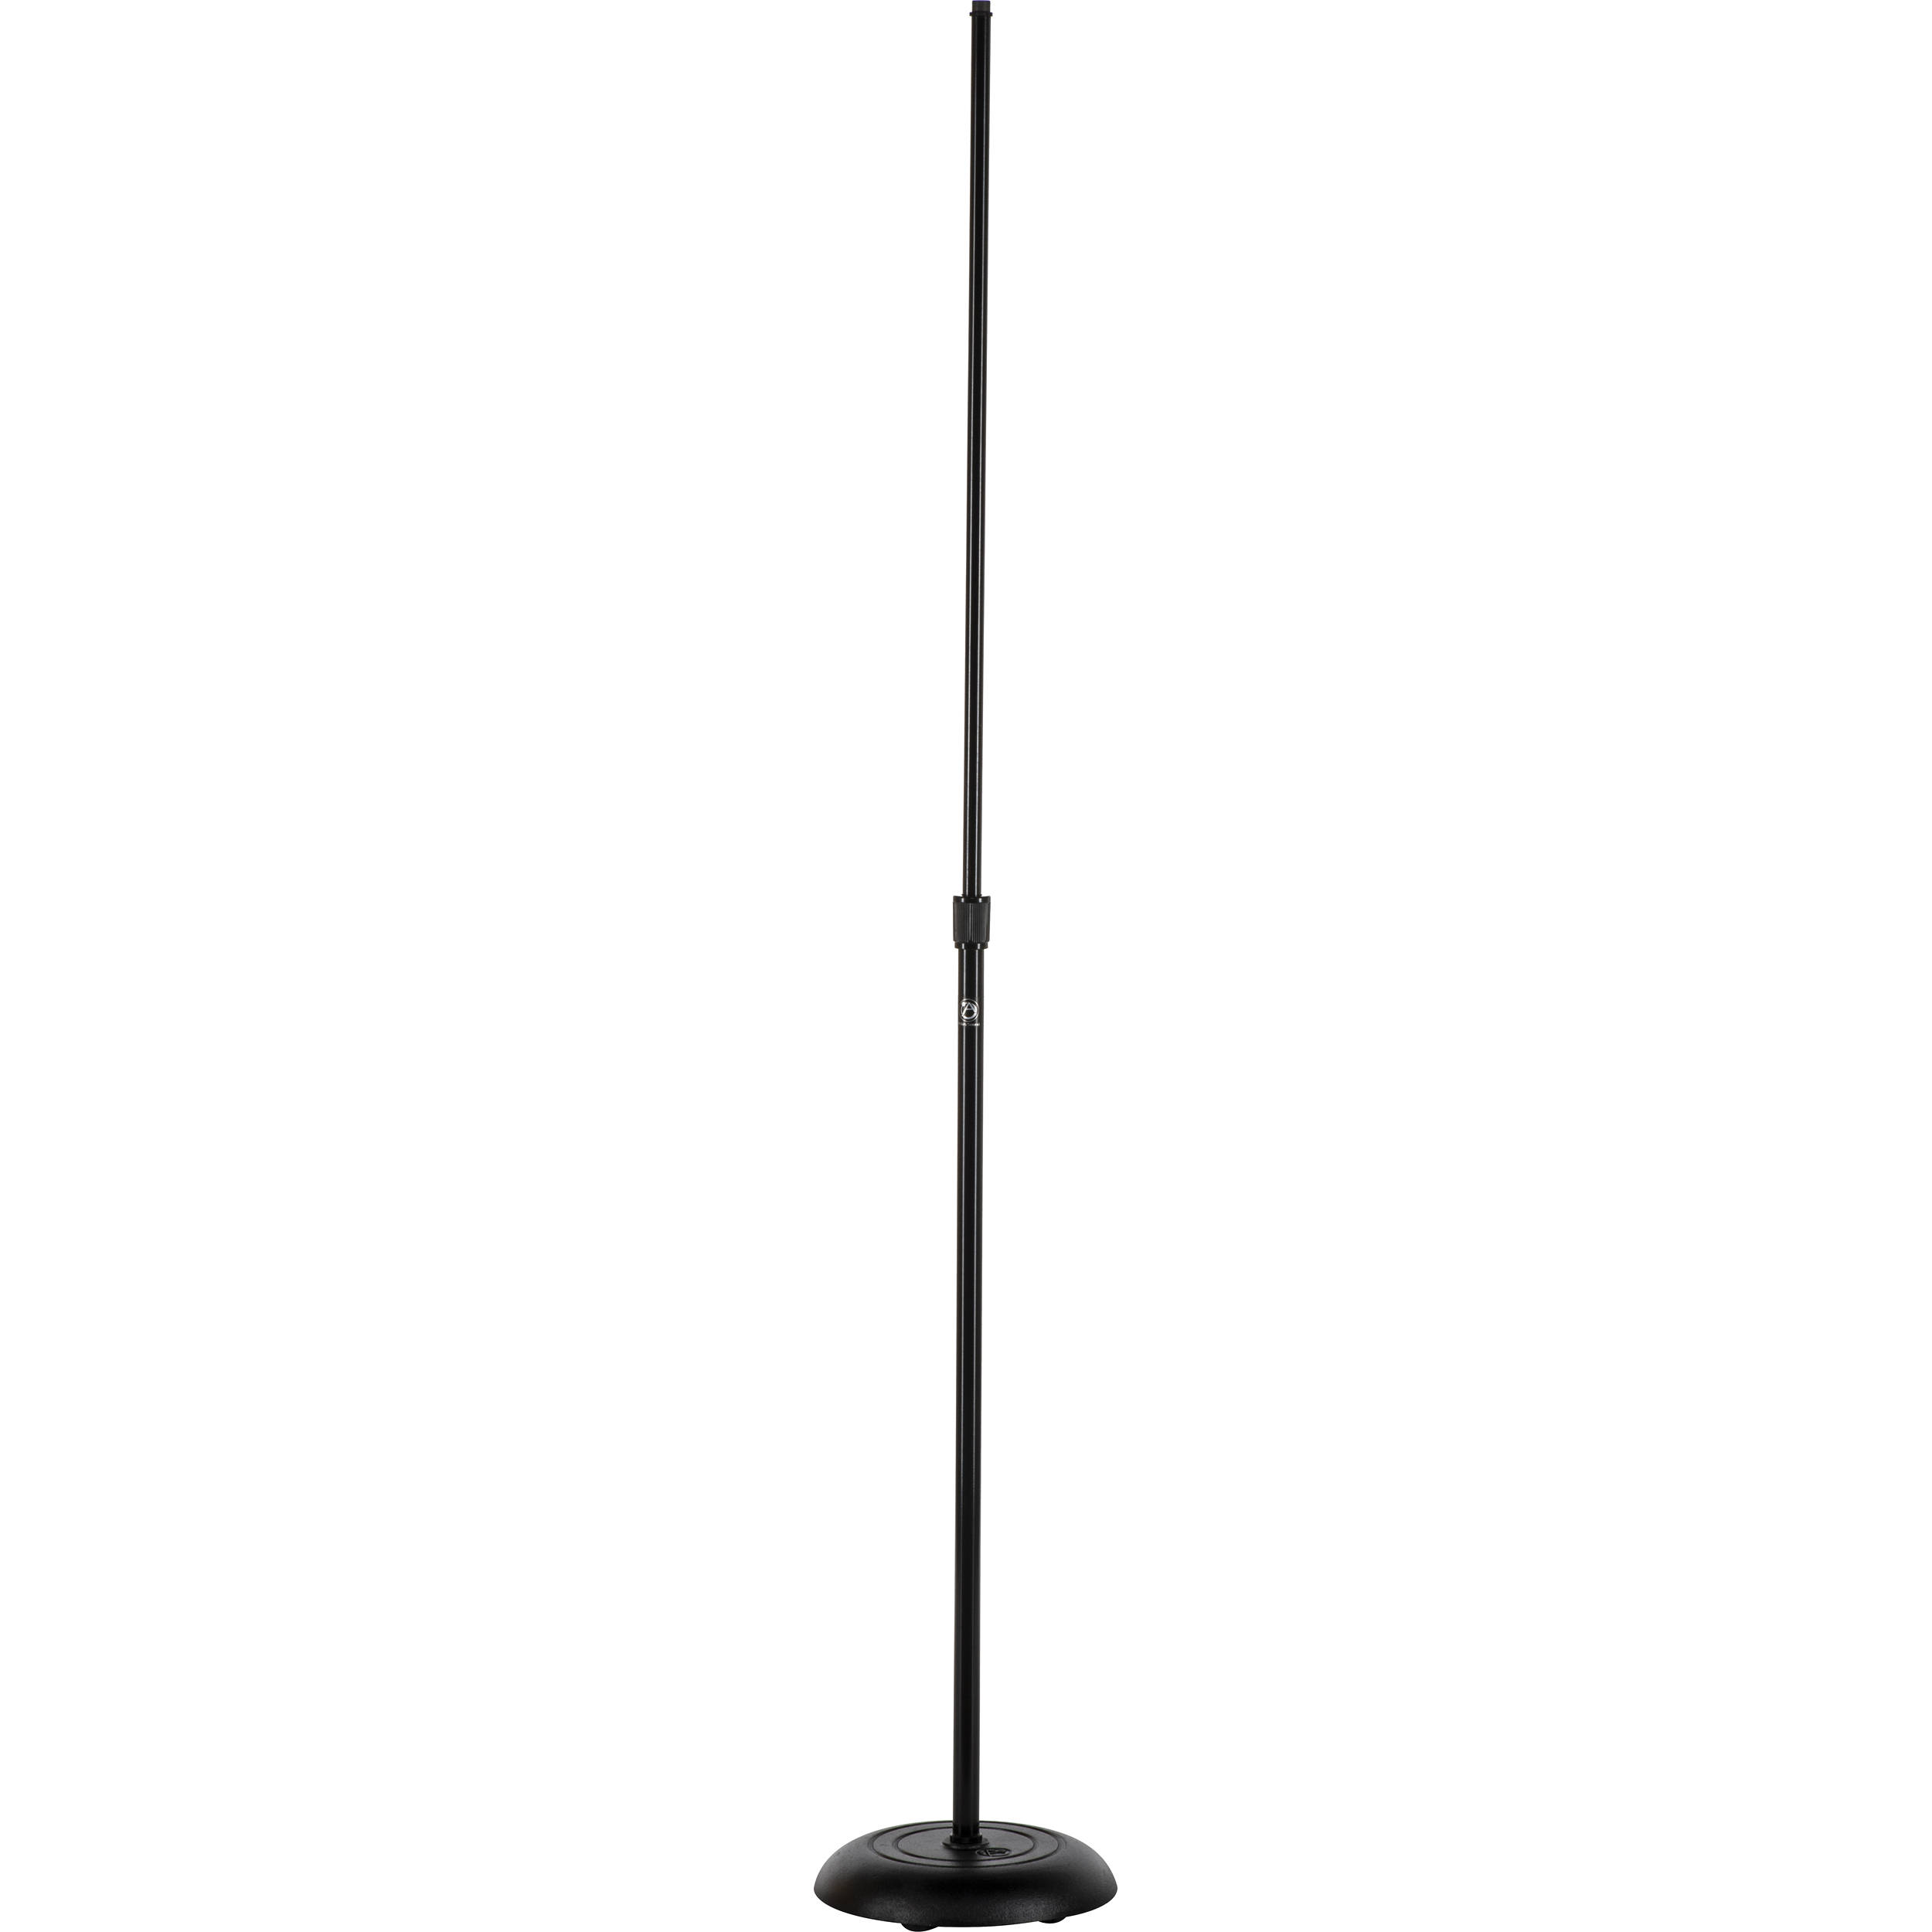 atlas sound ms 10ce microphone stand ms 10ce b h photo video. Black Bedroom Furniture Sets. Home Design Ideas